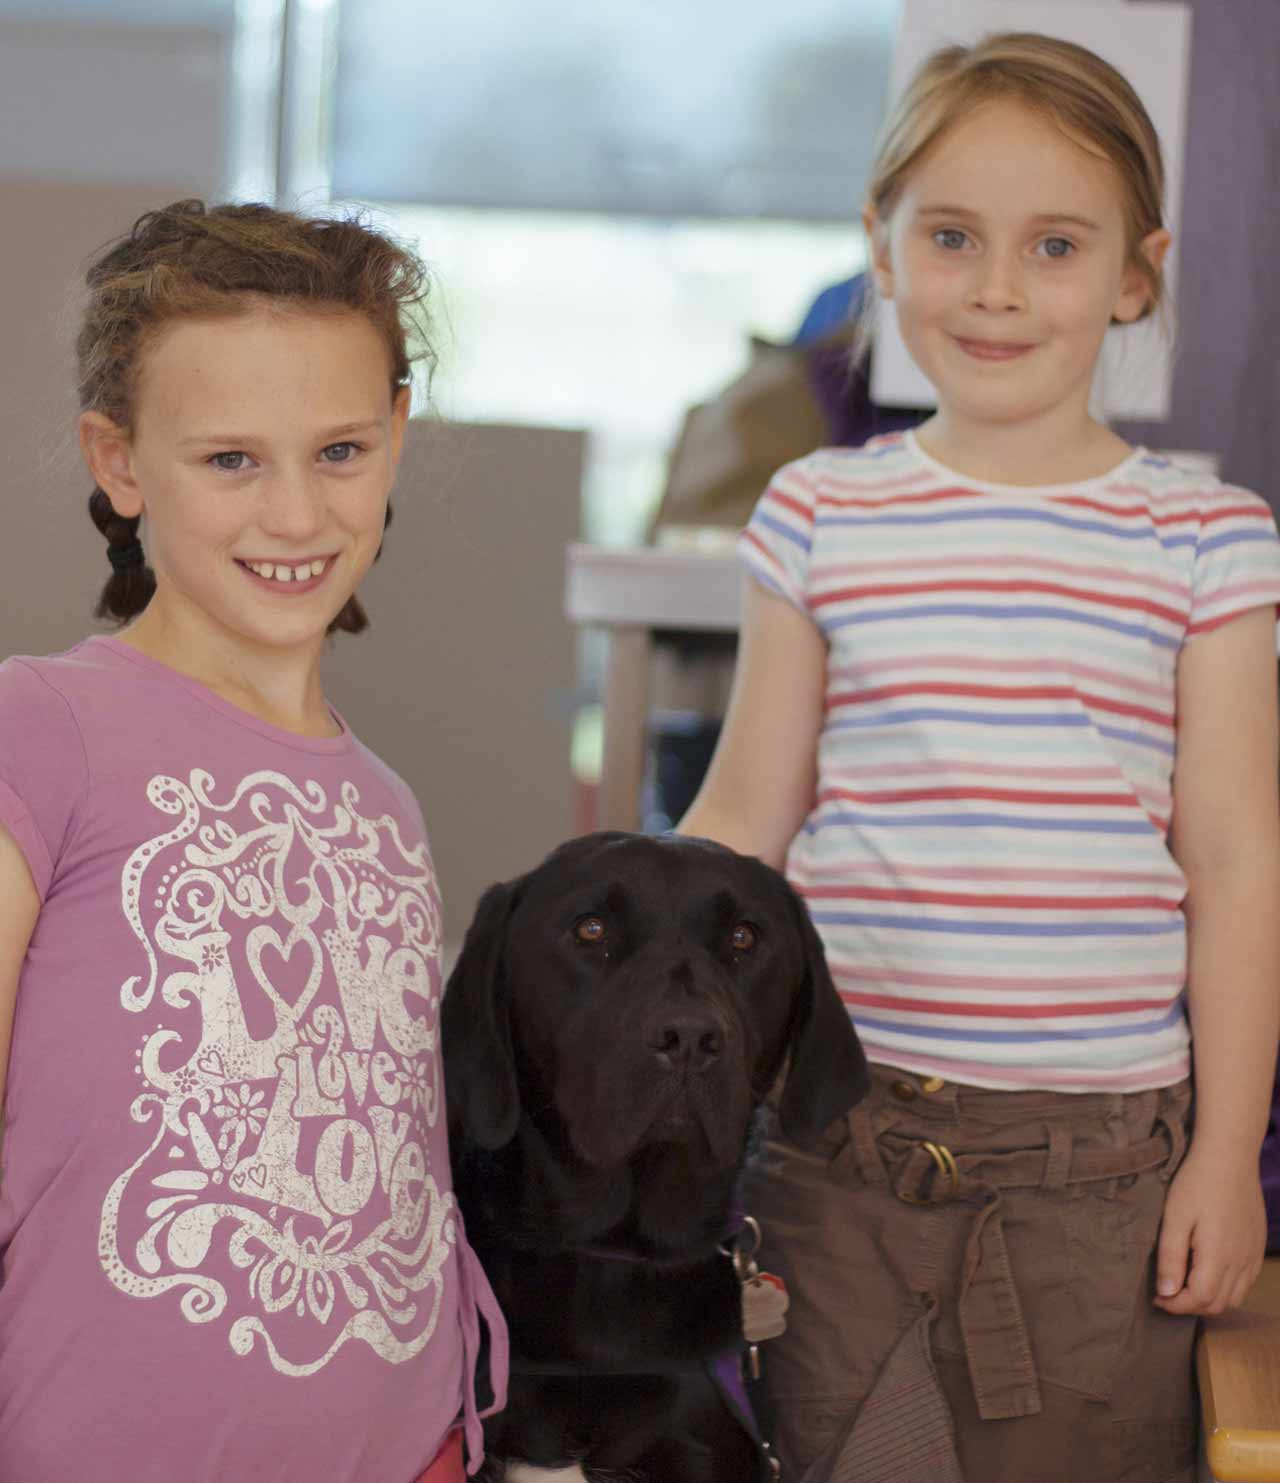 Two children and an assistance dog